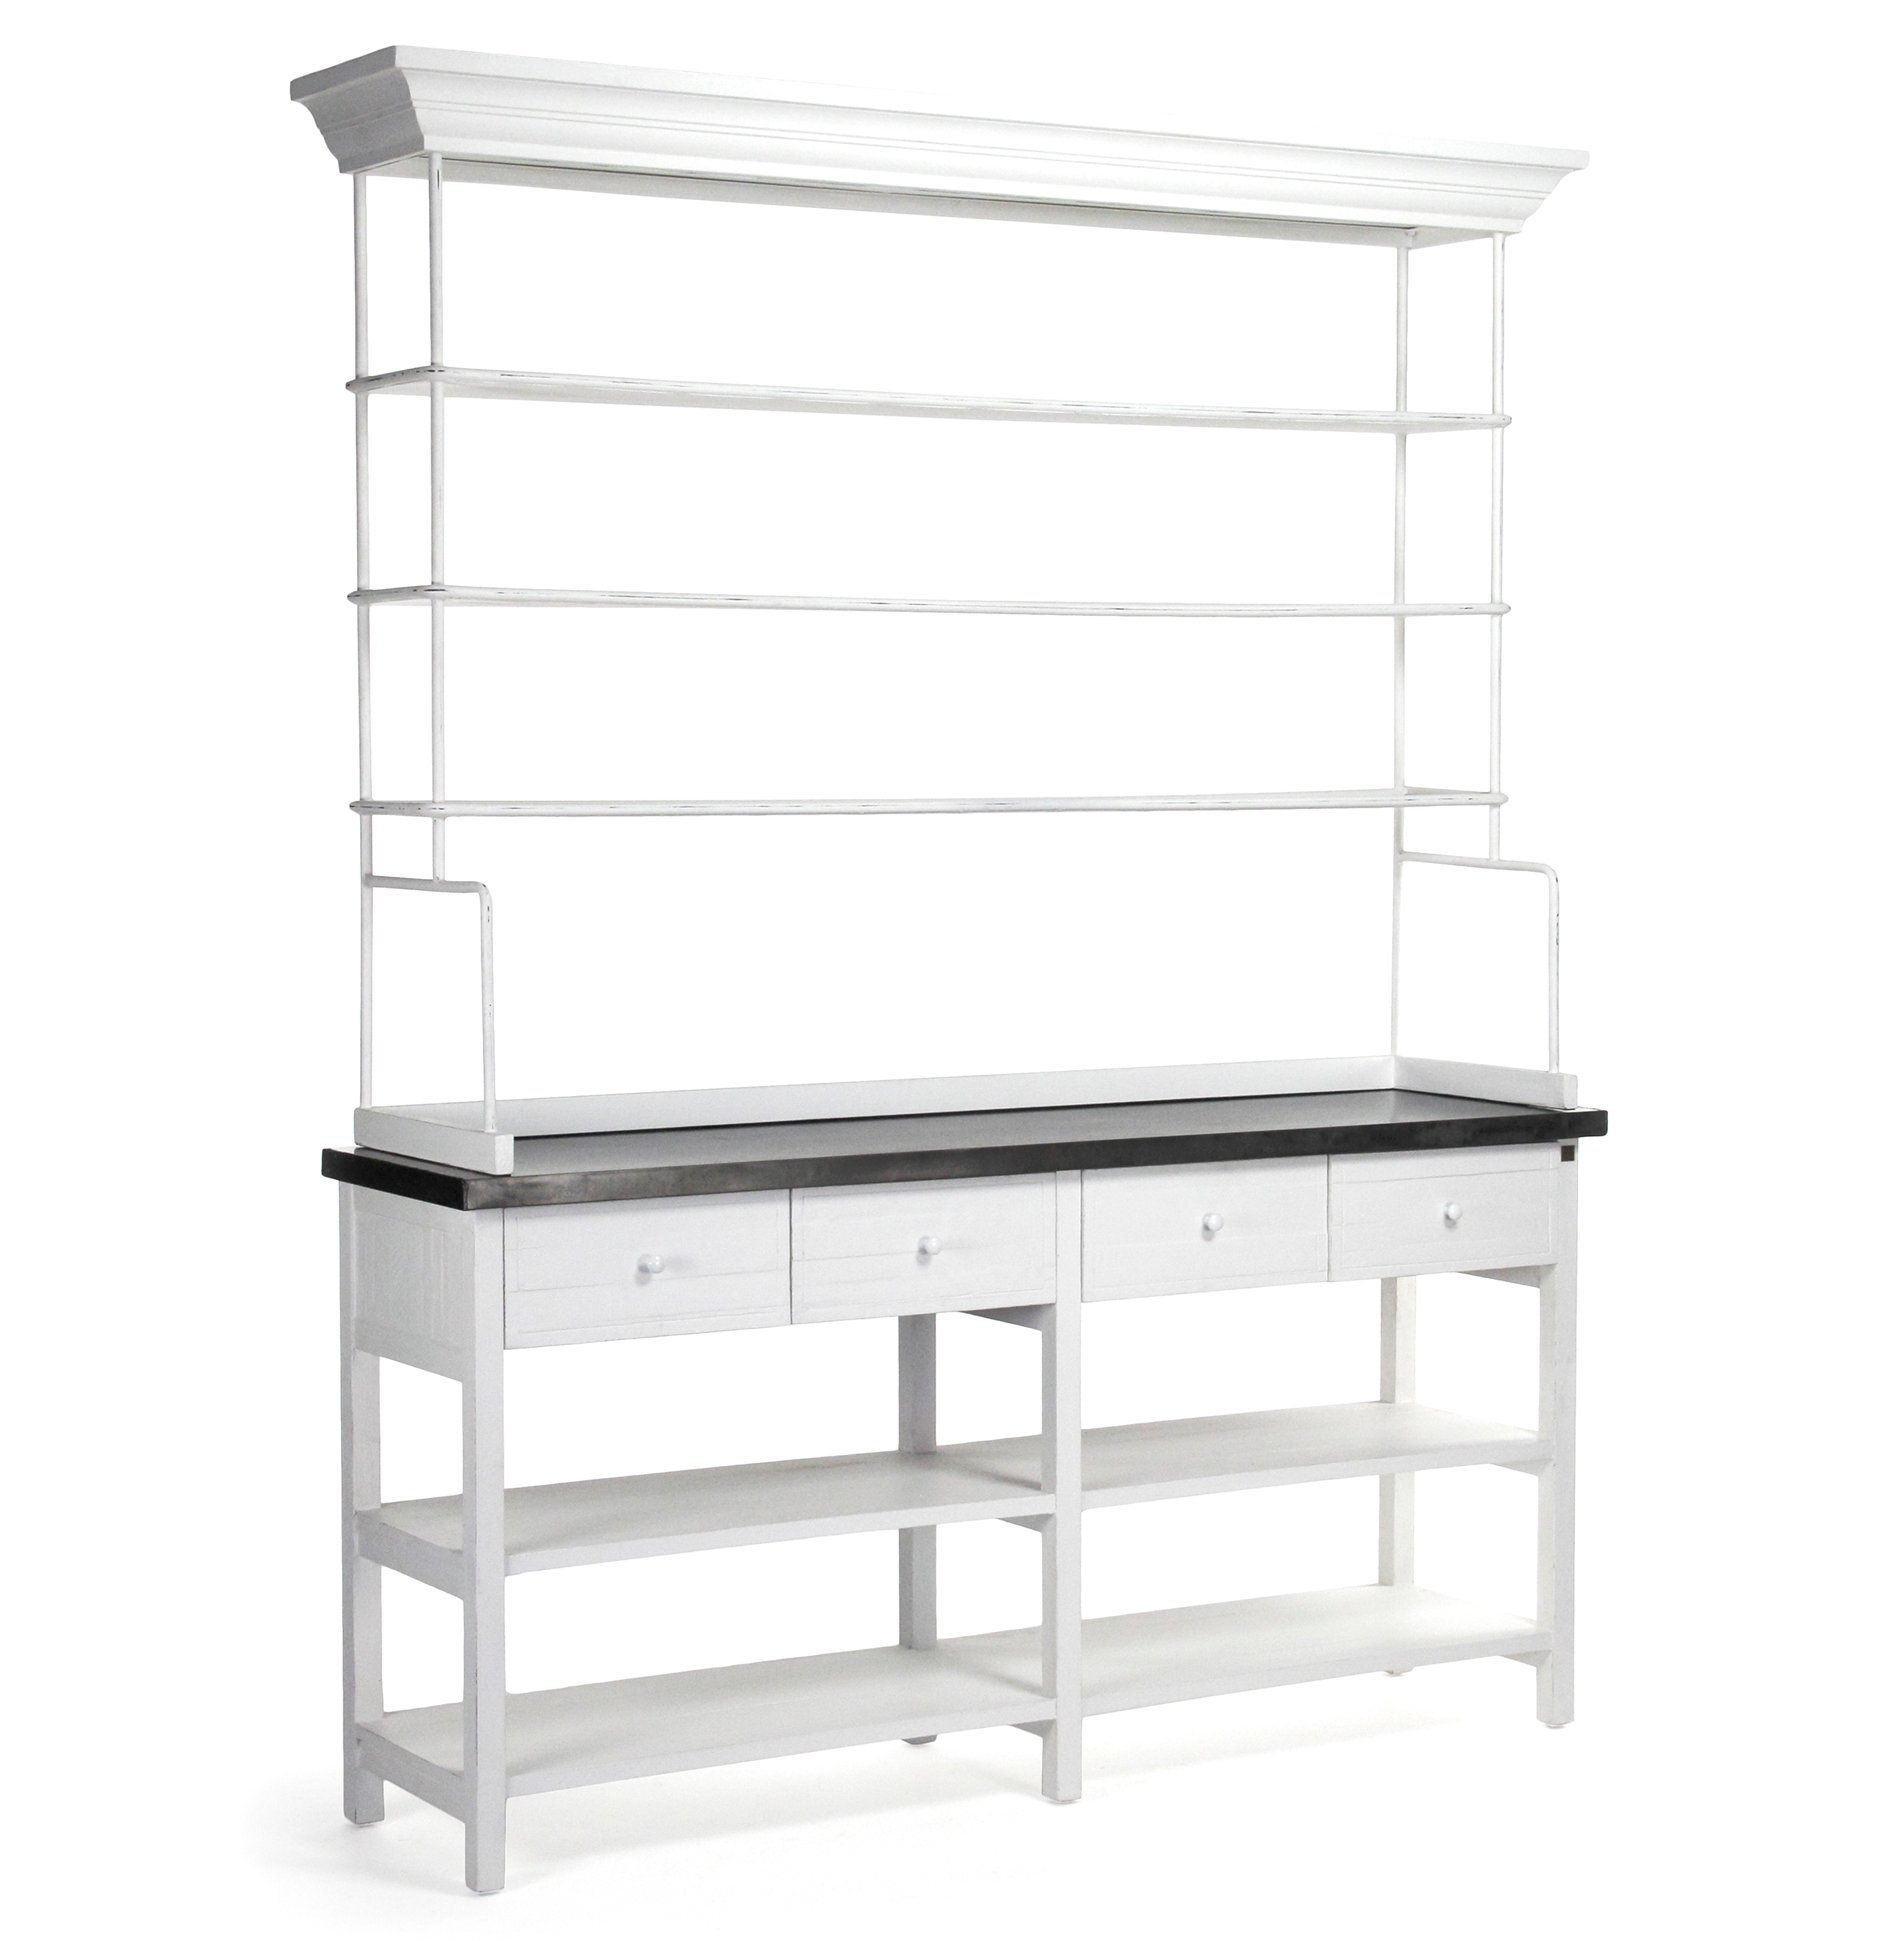 Marion Classic White Industrial Metal Large Display Shelf Bakers Rack